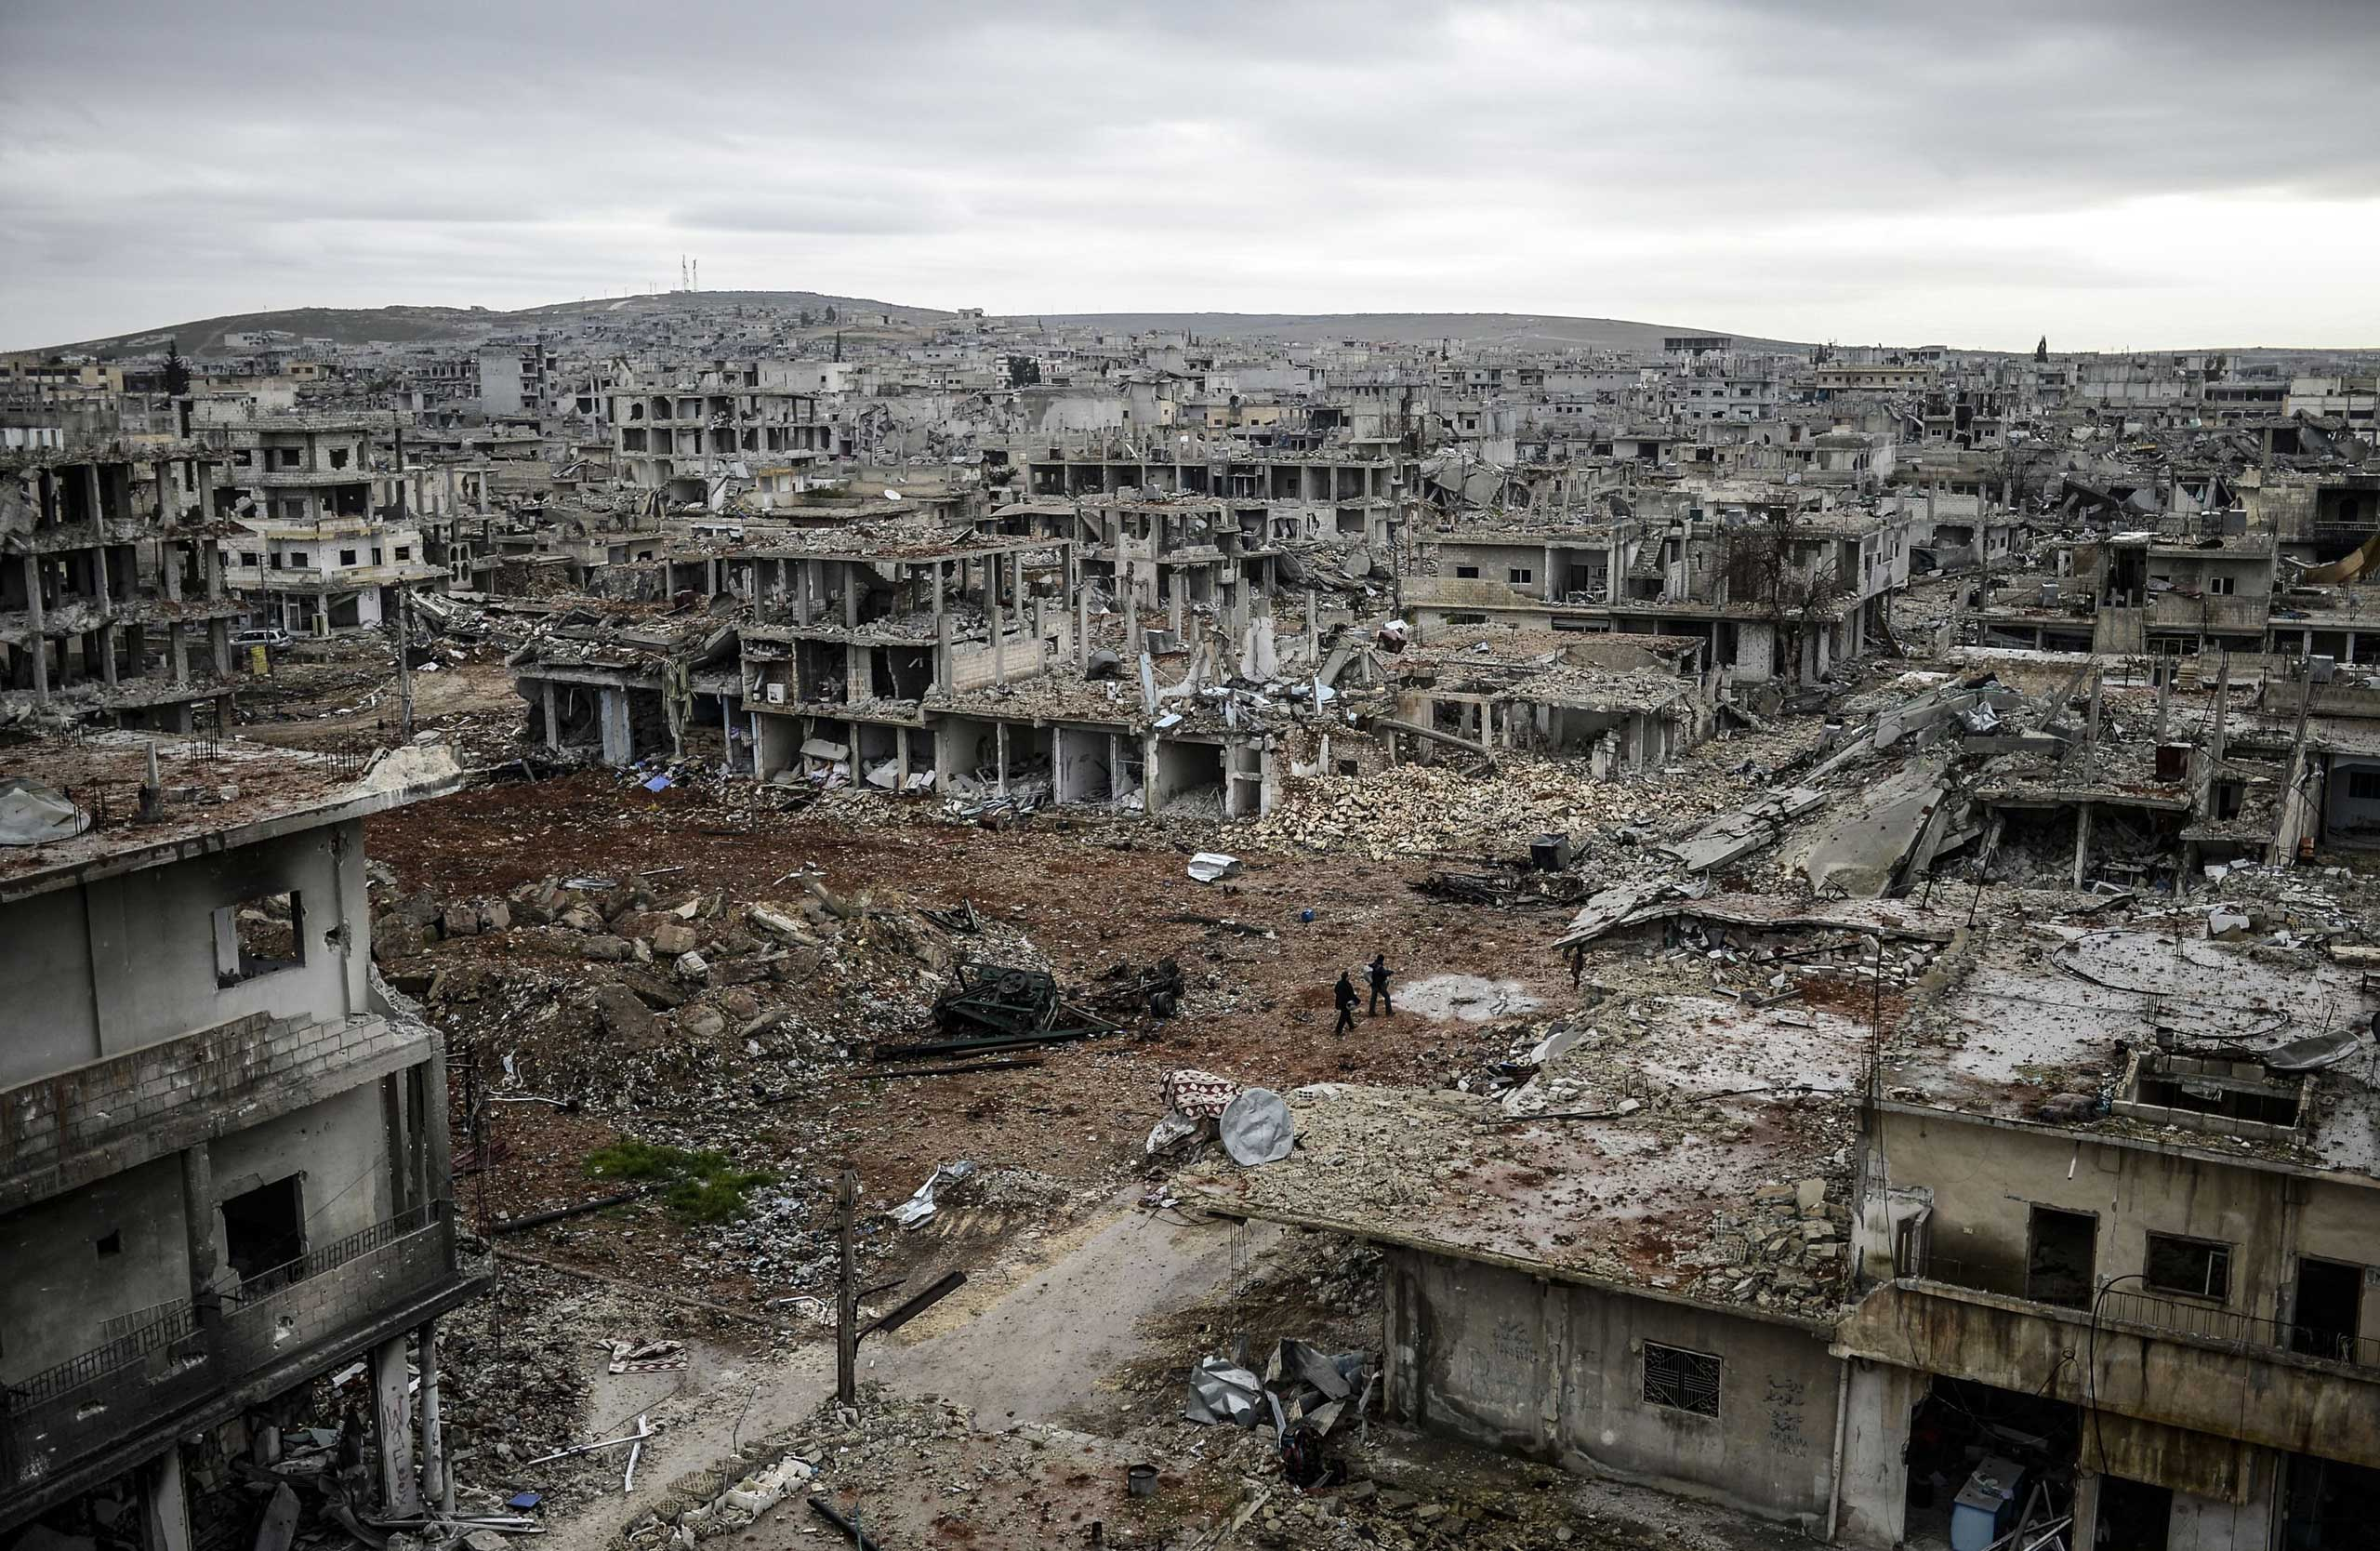 Jan. 30, 2015. The Eastern part of the destroyed city of Halimce, East of the Syrian town of Kobane. Kurdish forces recaptured the town on the Turkish frontier on January 26, in a symbolic blow to the jihadists who have seized large swathes of territory in their onslaught across Syria and Iraq.